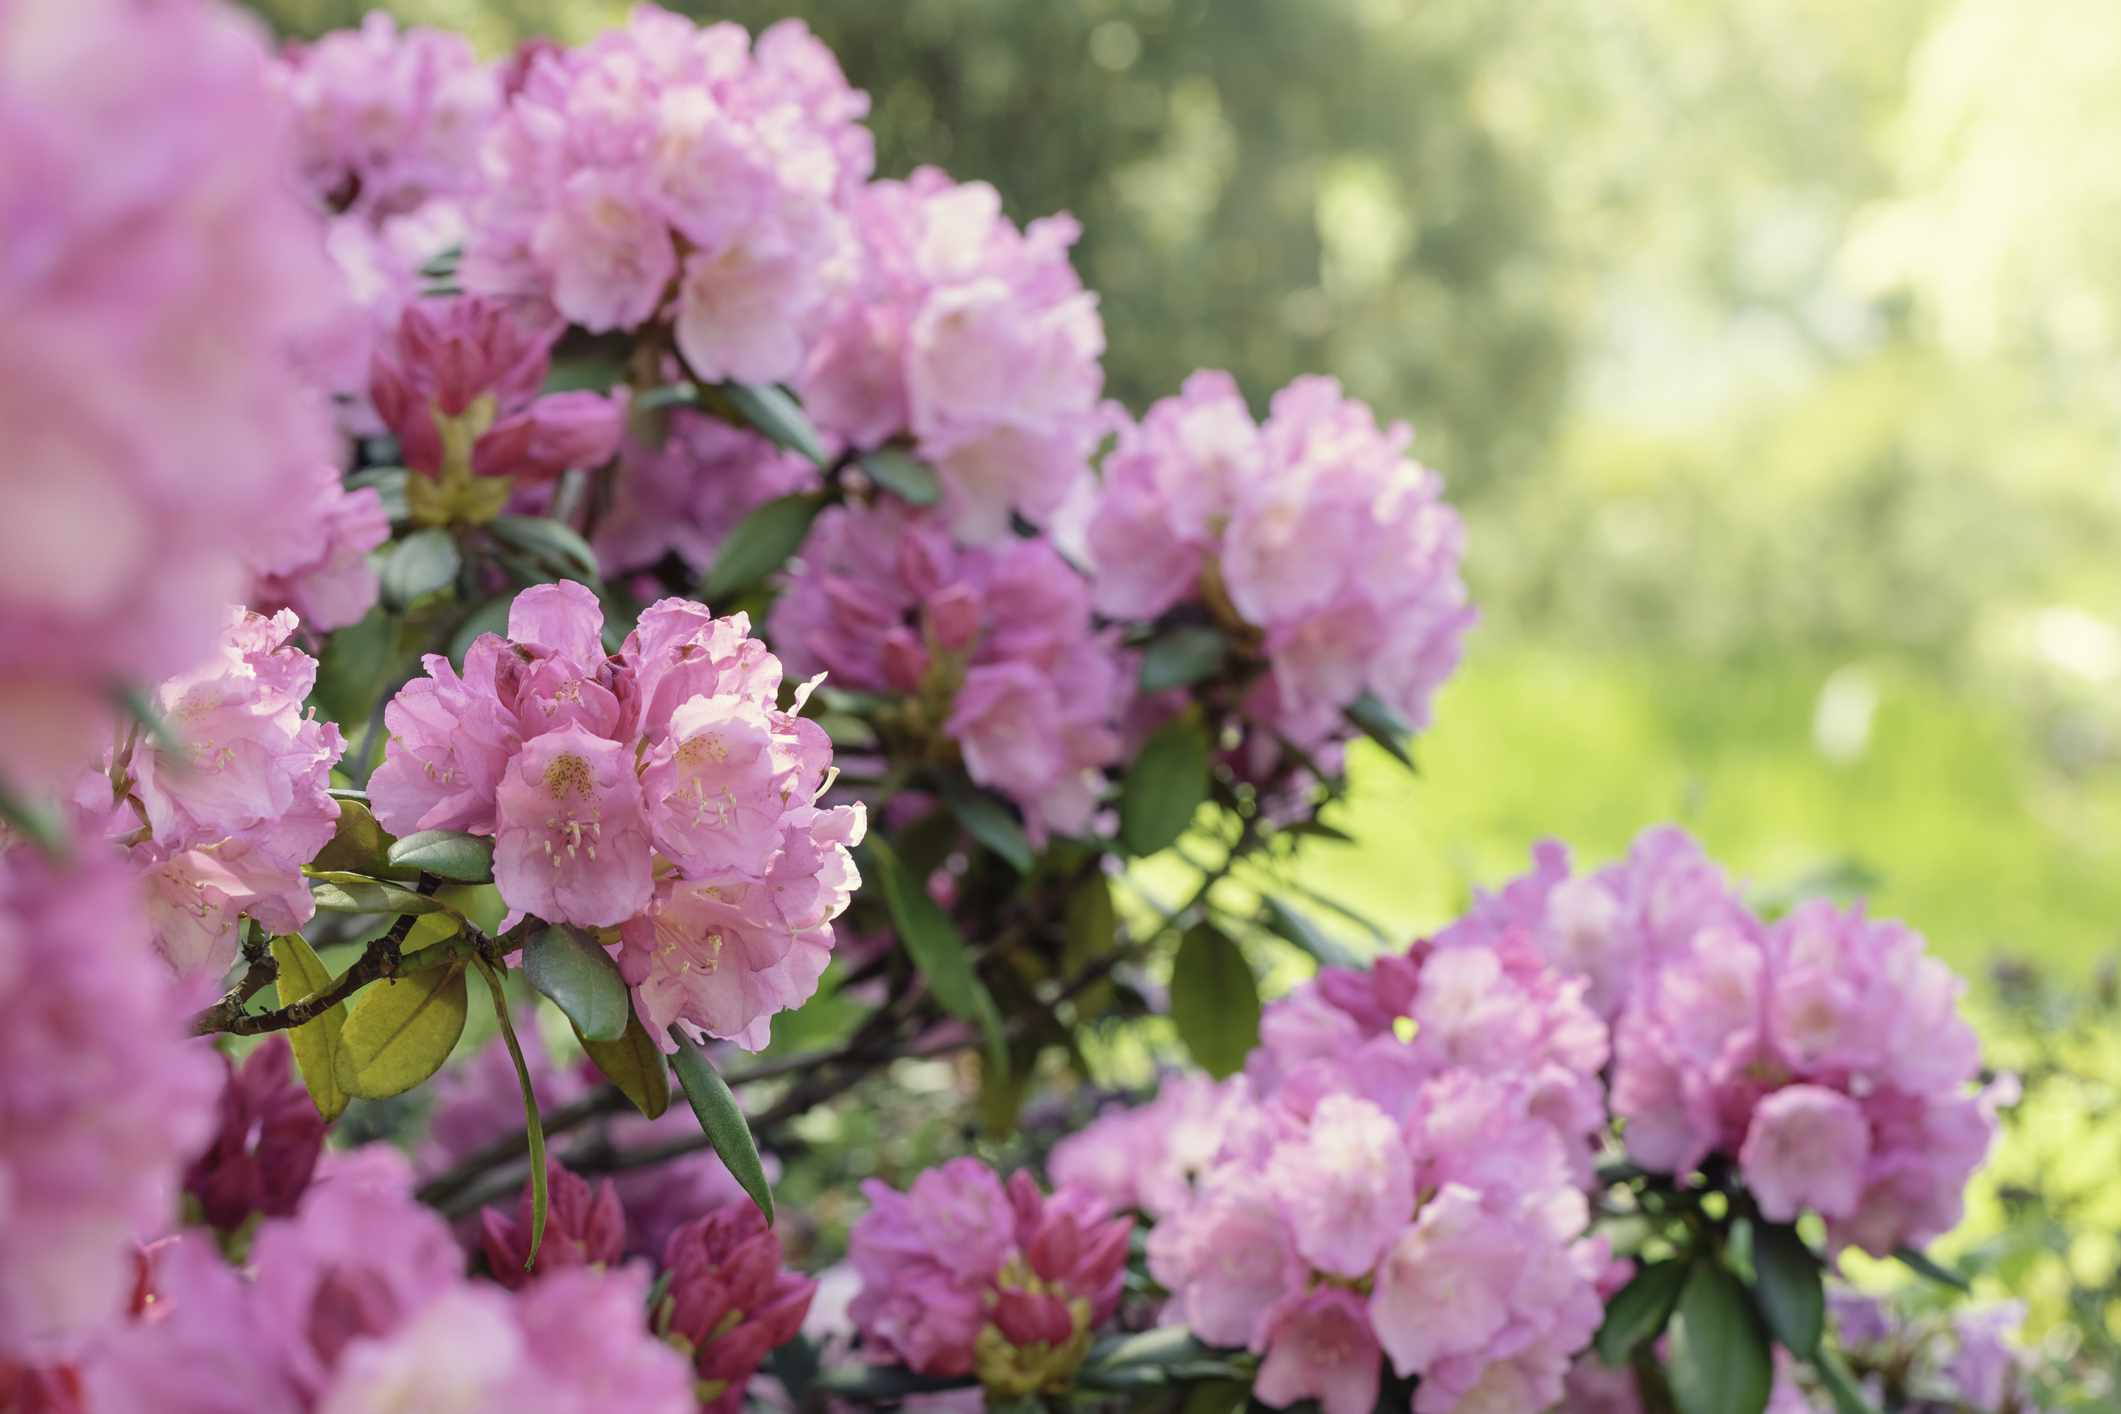 Rhododendron bush blooming in spring